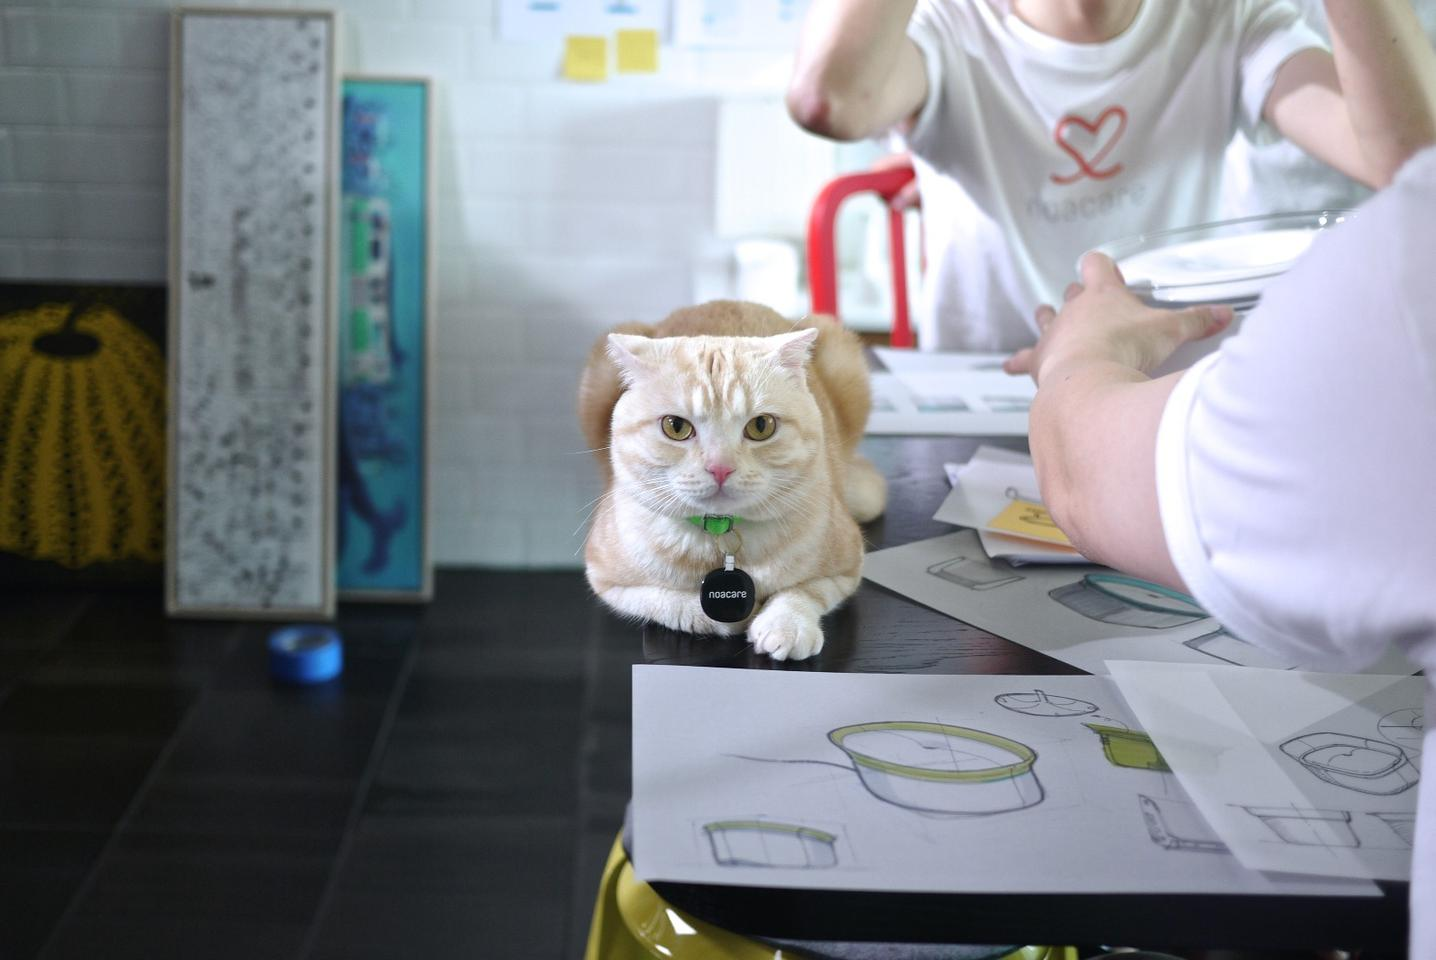 Many cats assisted in the making of Pura